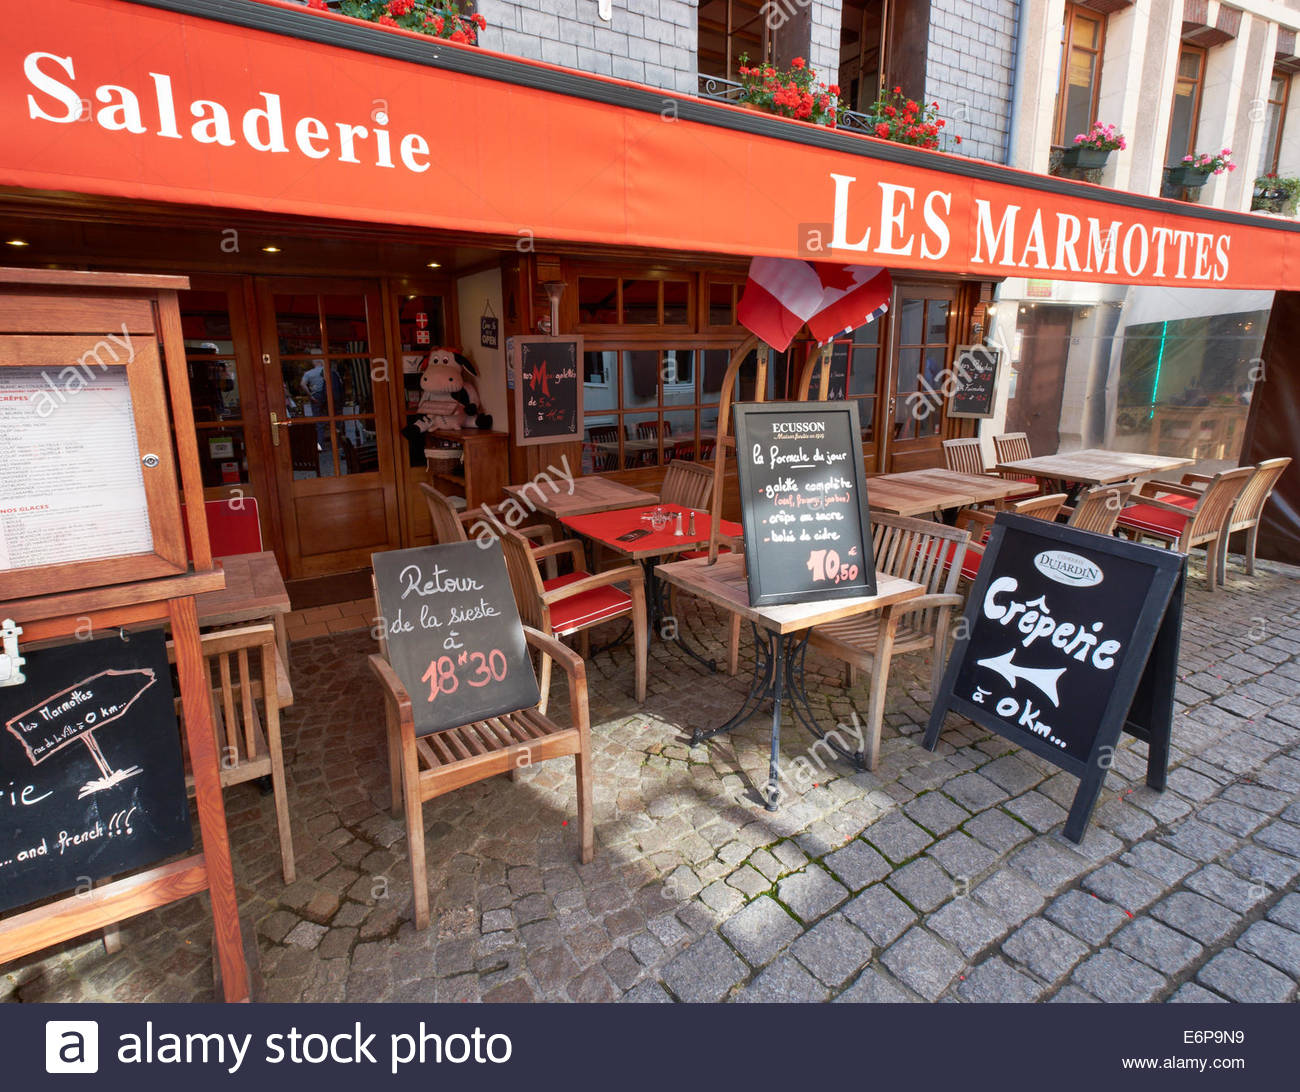 Creperie at zero kilometre 0km, sense of humour. Blackboard sign outside restaurant reopens after siesta sign Honfleur - Stock Image